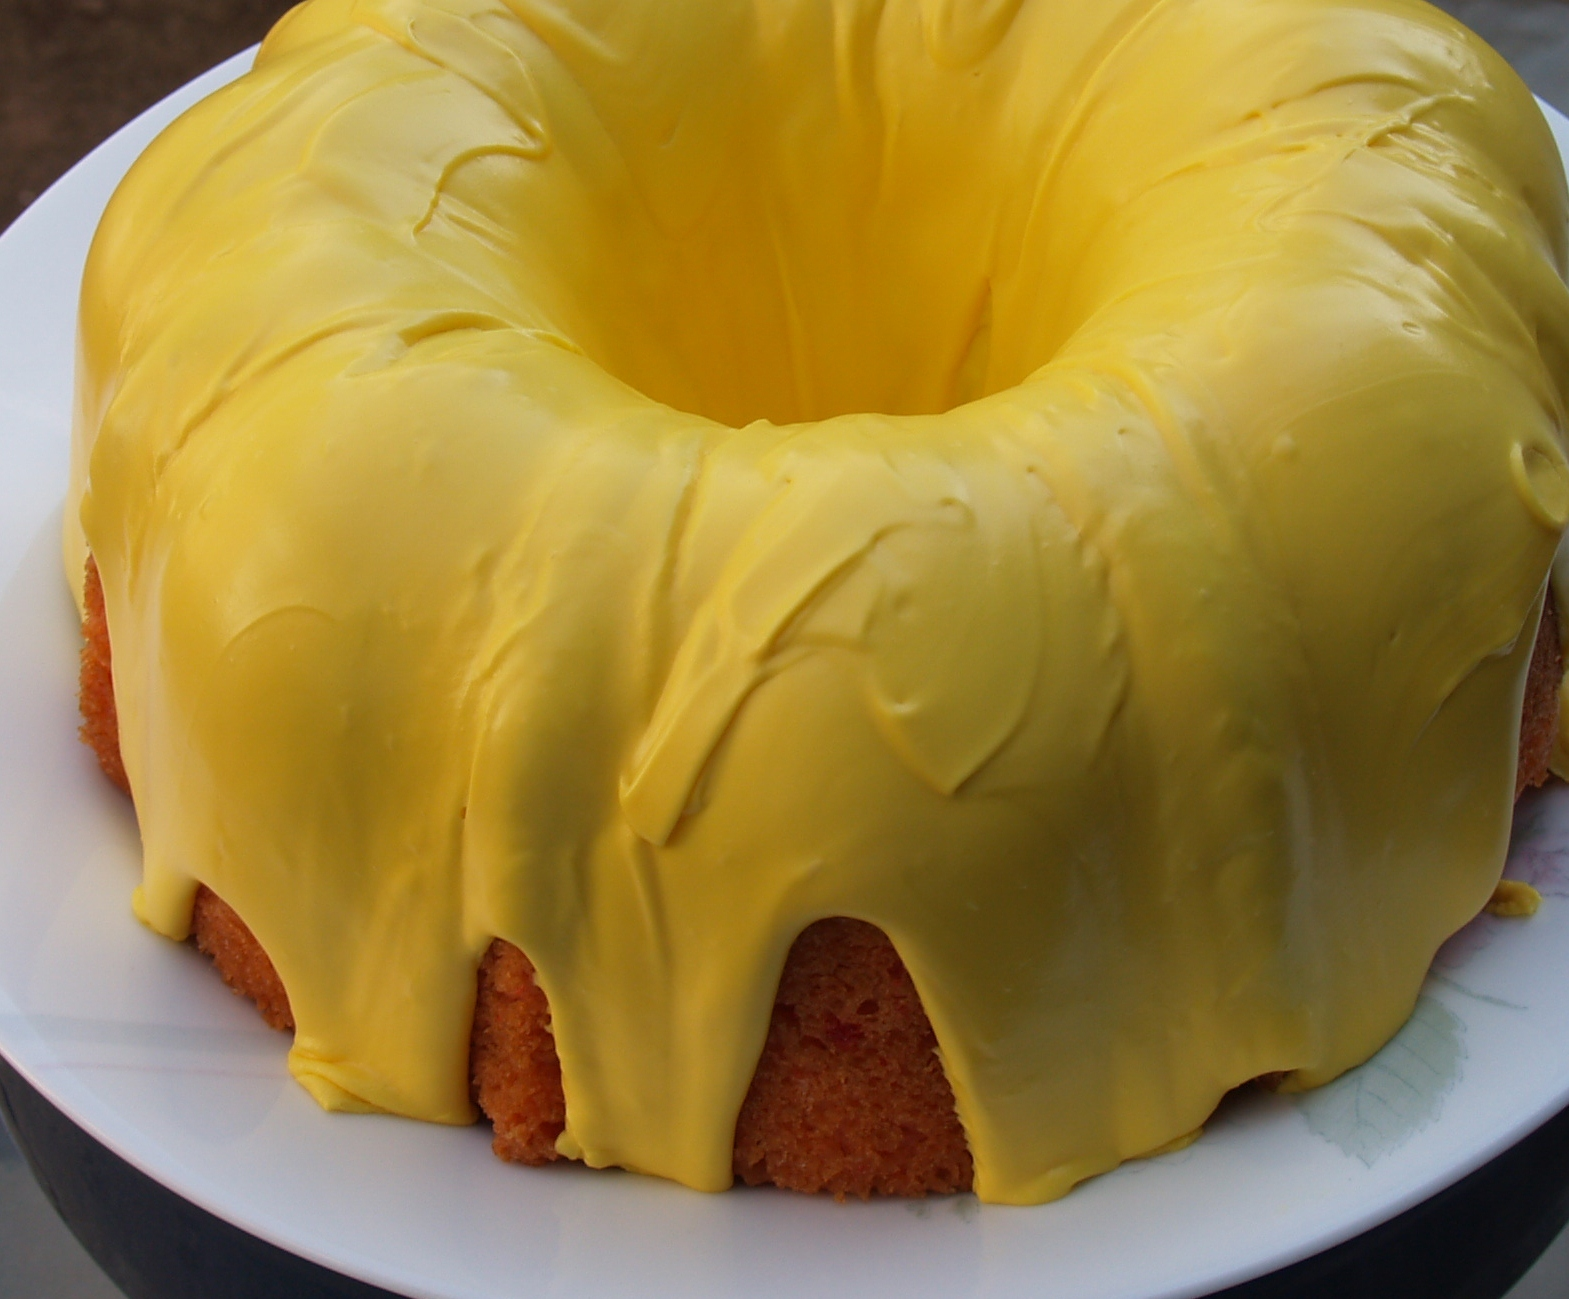 Strawberry Bundt Cake with Lemon Icing from Kelli's Kitchen